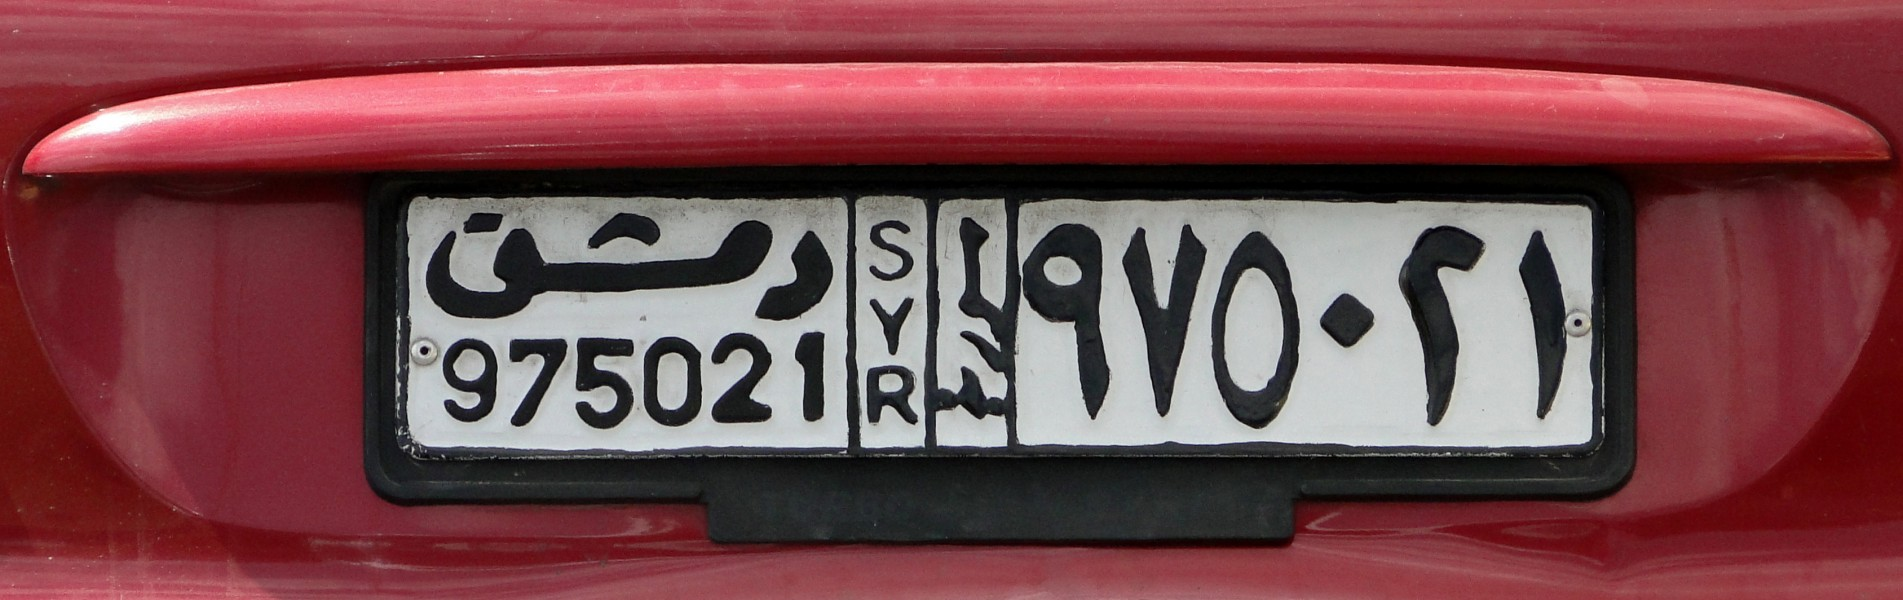 License plate of Syria 01